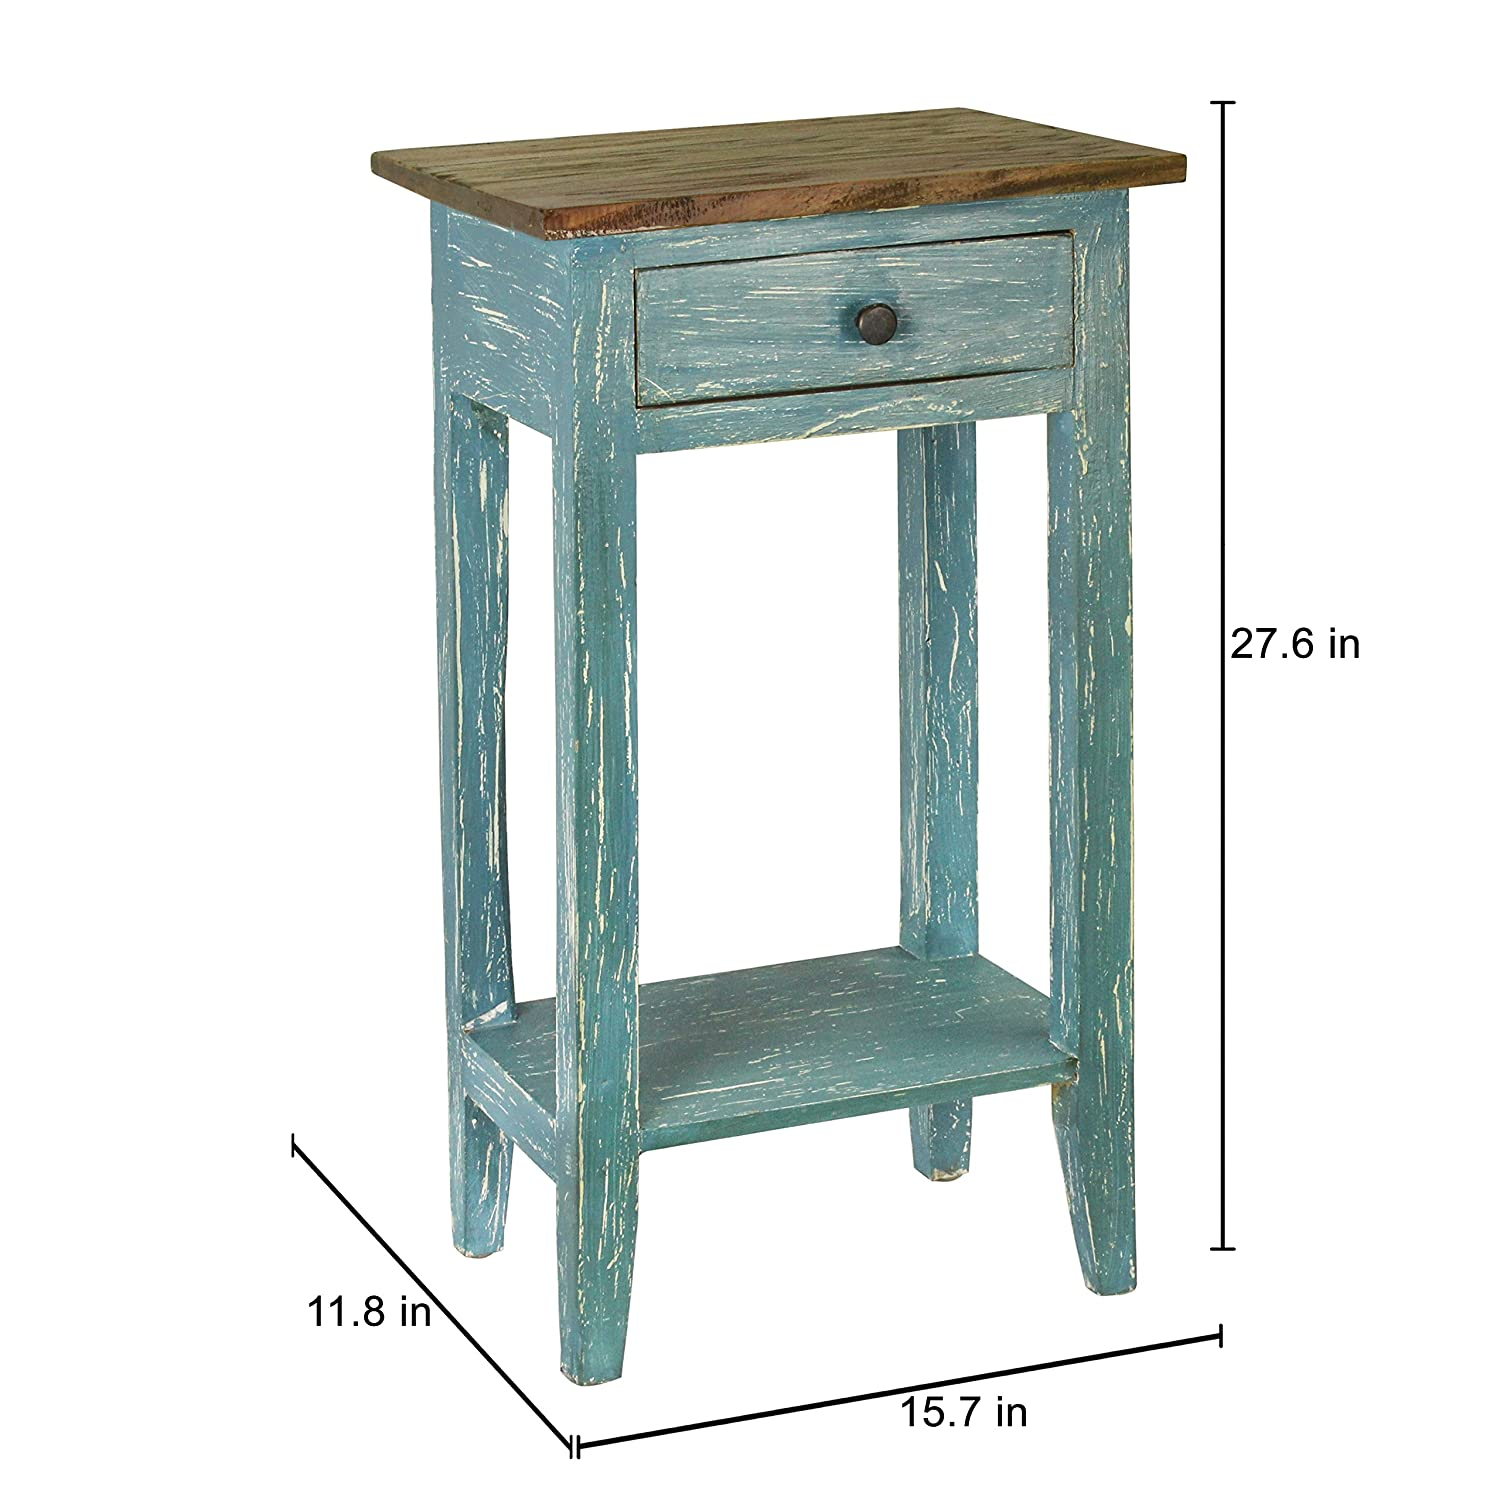 Amazon.com: Antique Revival Avignon Side Table, Blue: Kitchen & Dining